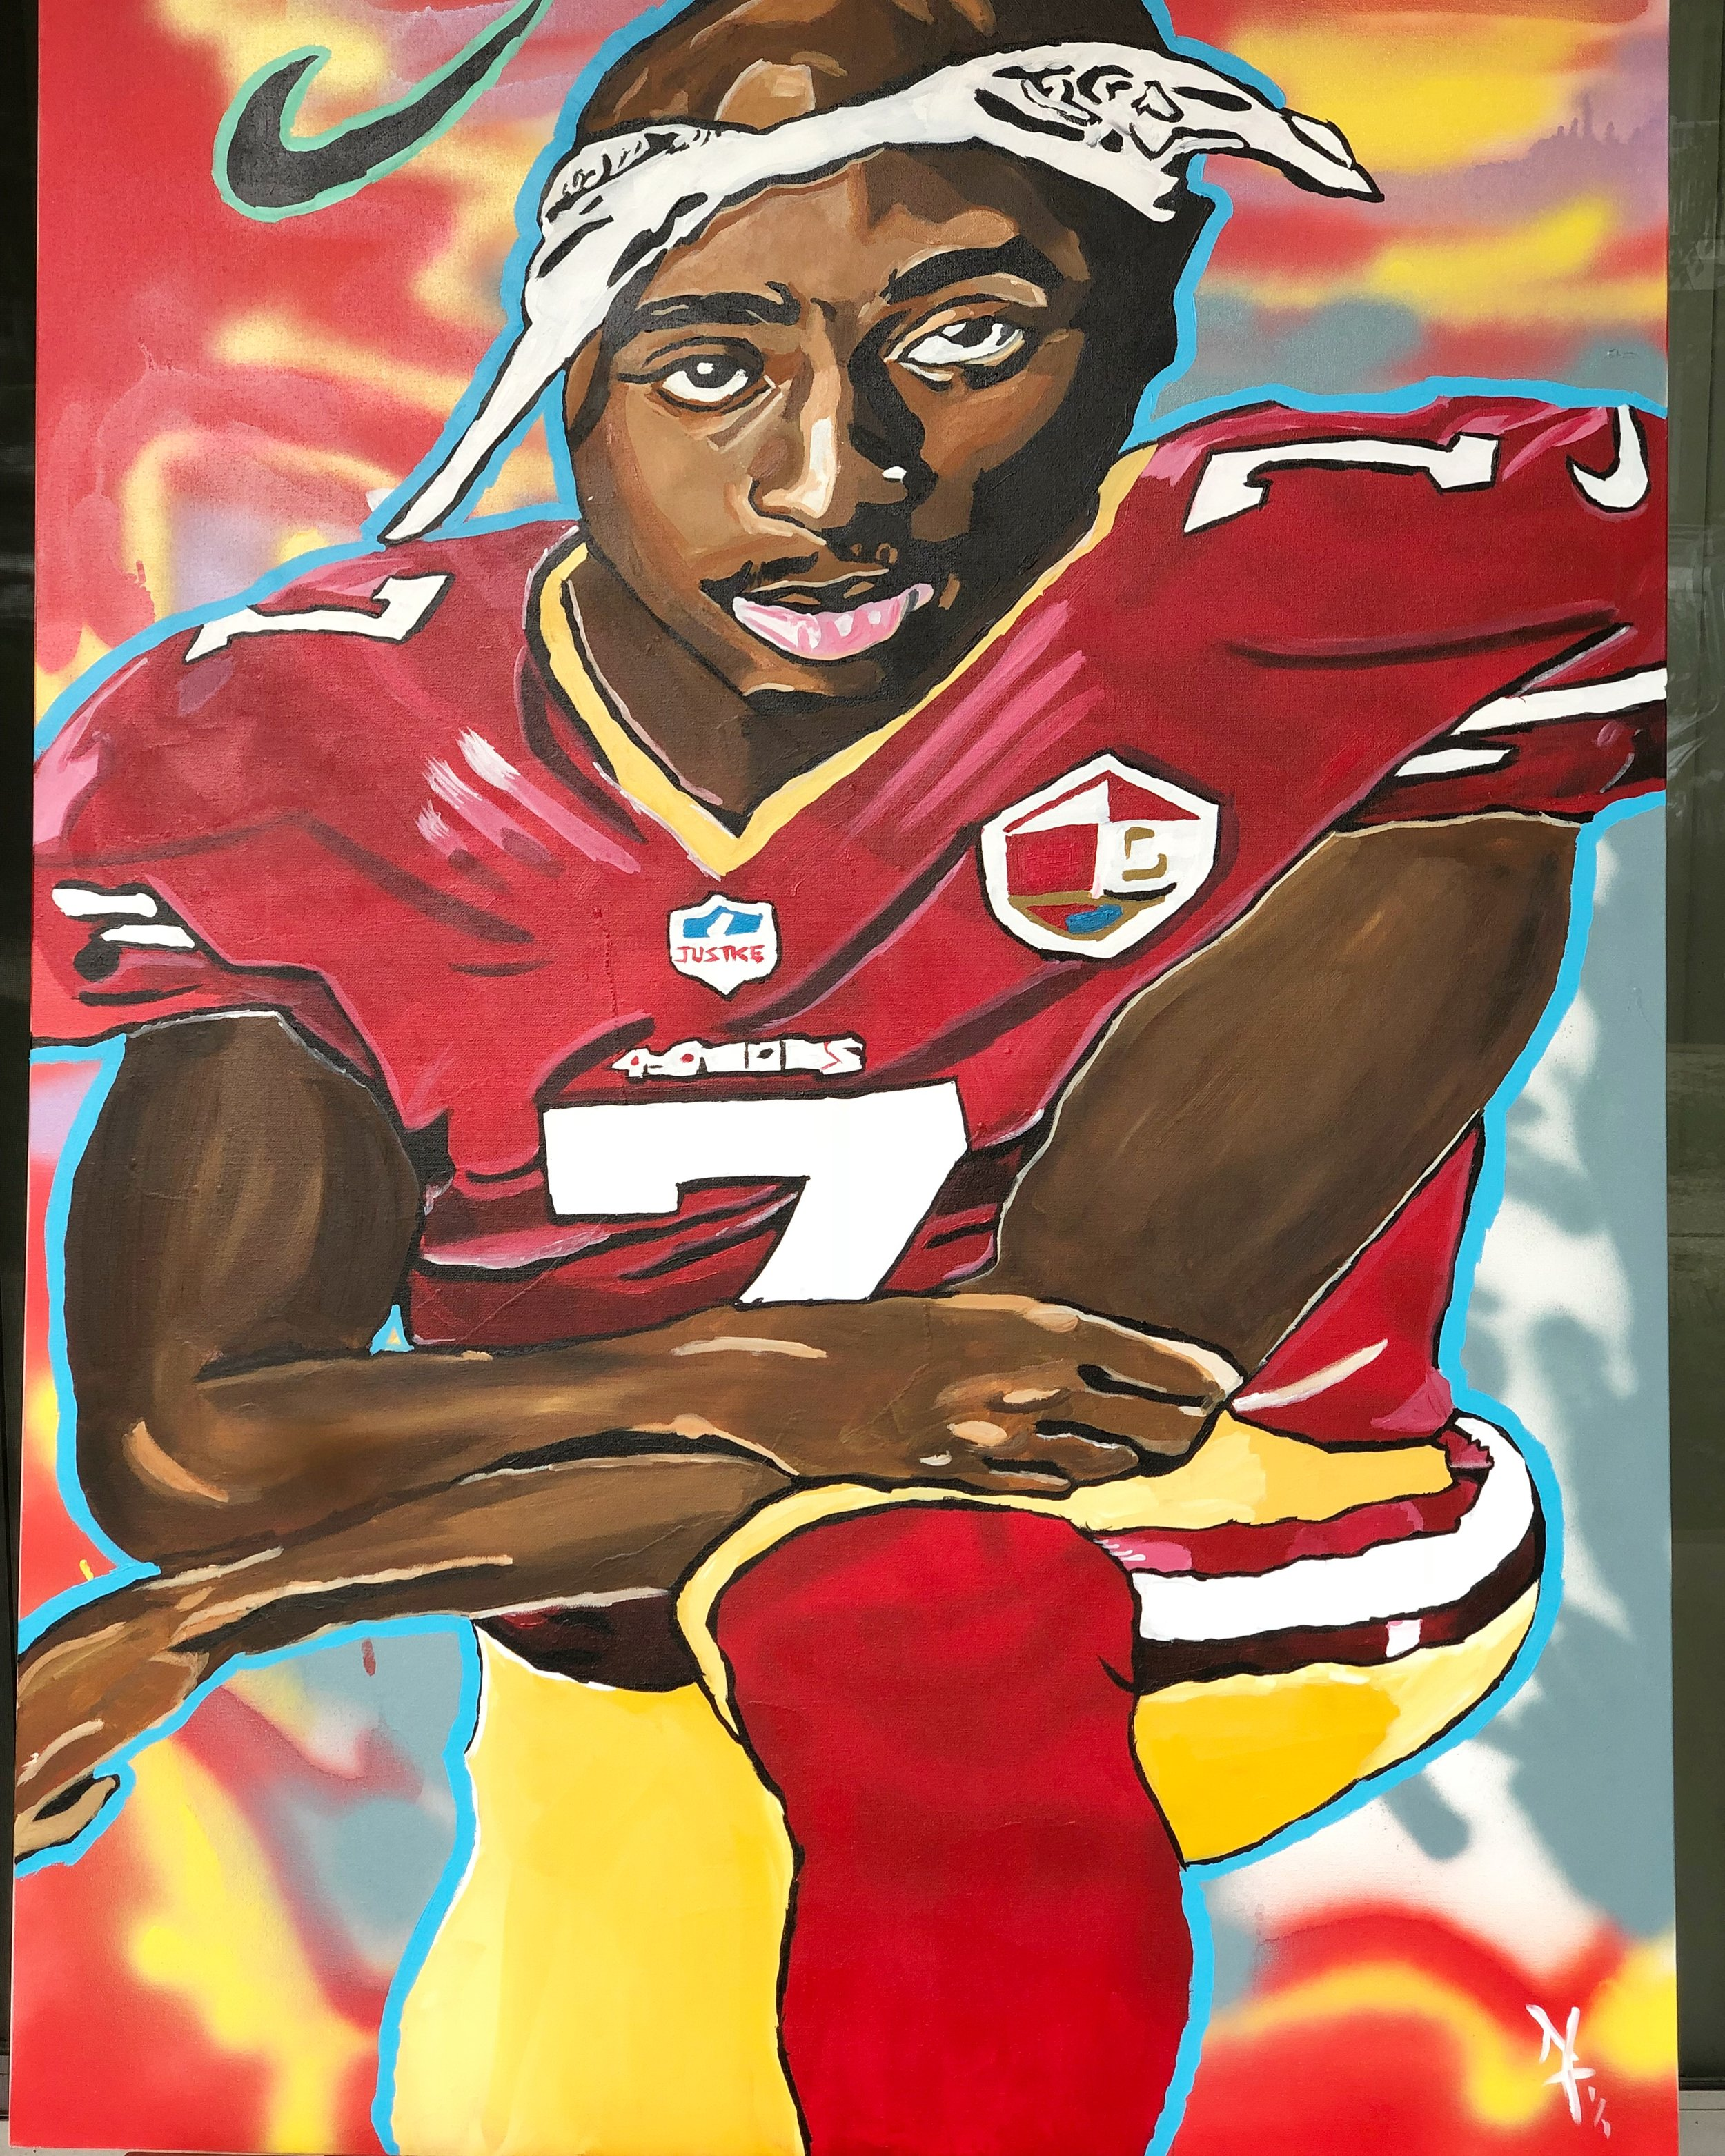 KNEEL with kap - Nai Turner36x48Acrylic PaintA ONE OF ONE PIECE. CERTIFICATE OF AUTHENTICATION PROVIDED.Contact Artist To Purchase